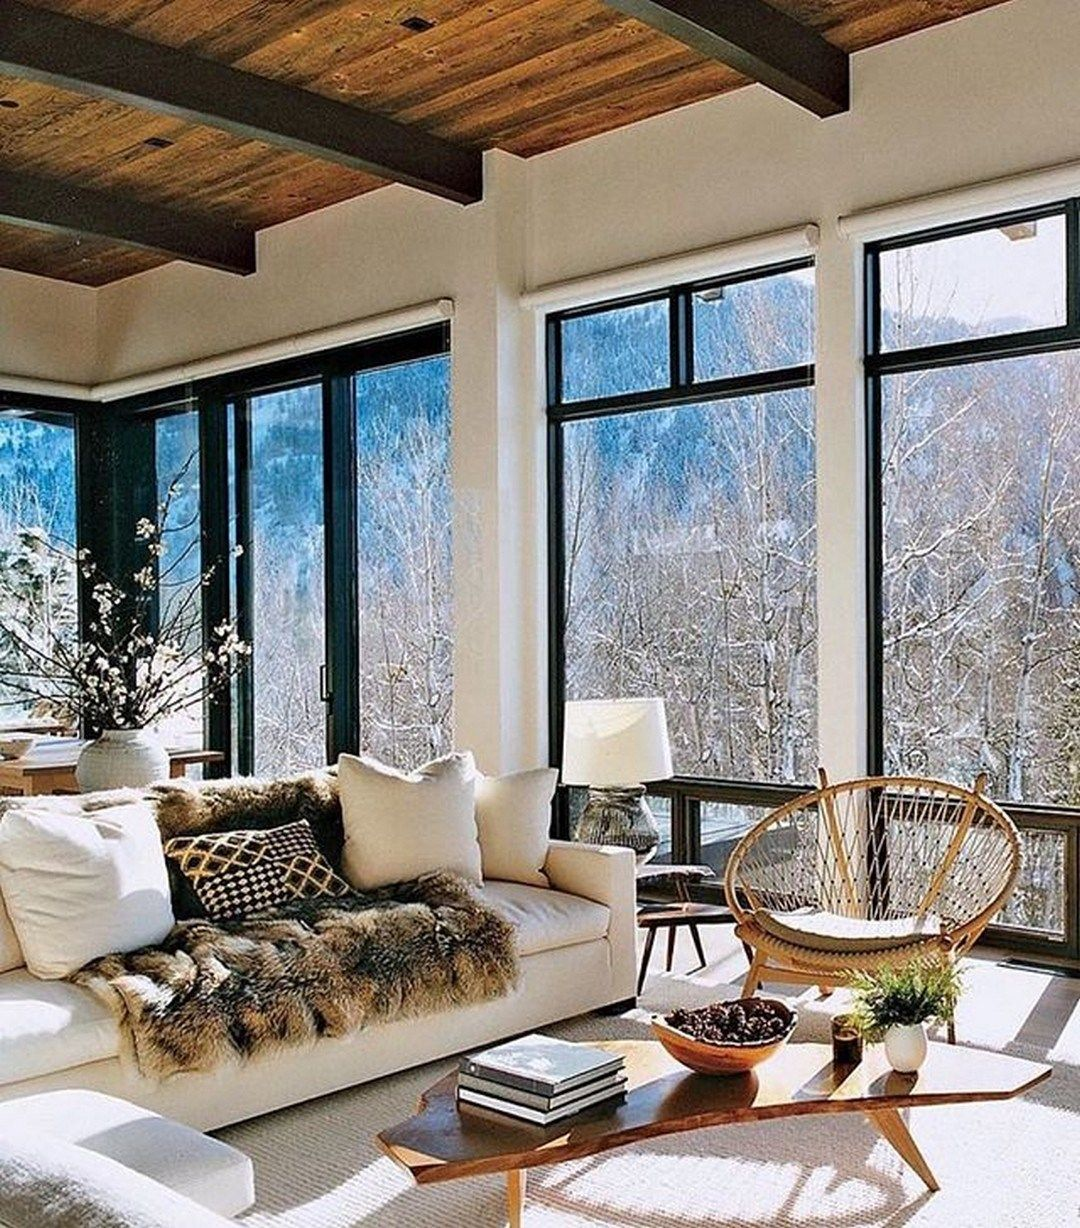 Modern Cozy Mountain Home Design Ideas 30 With Images Aspen